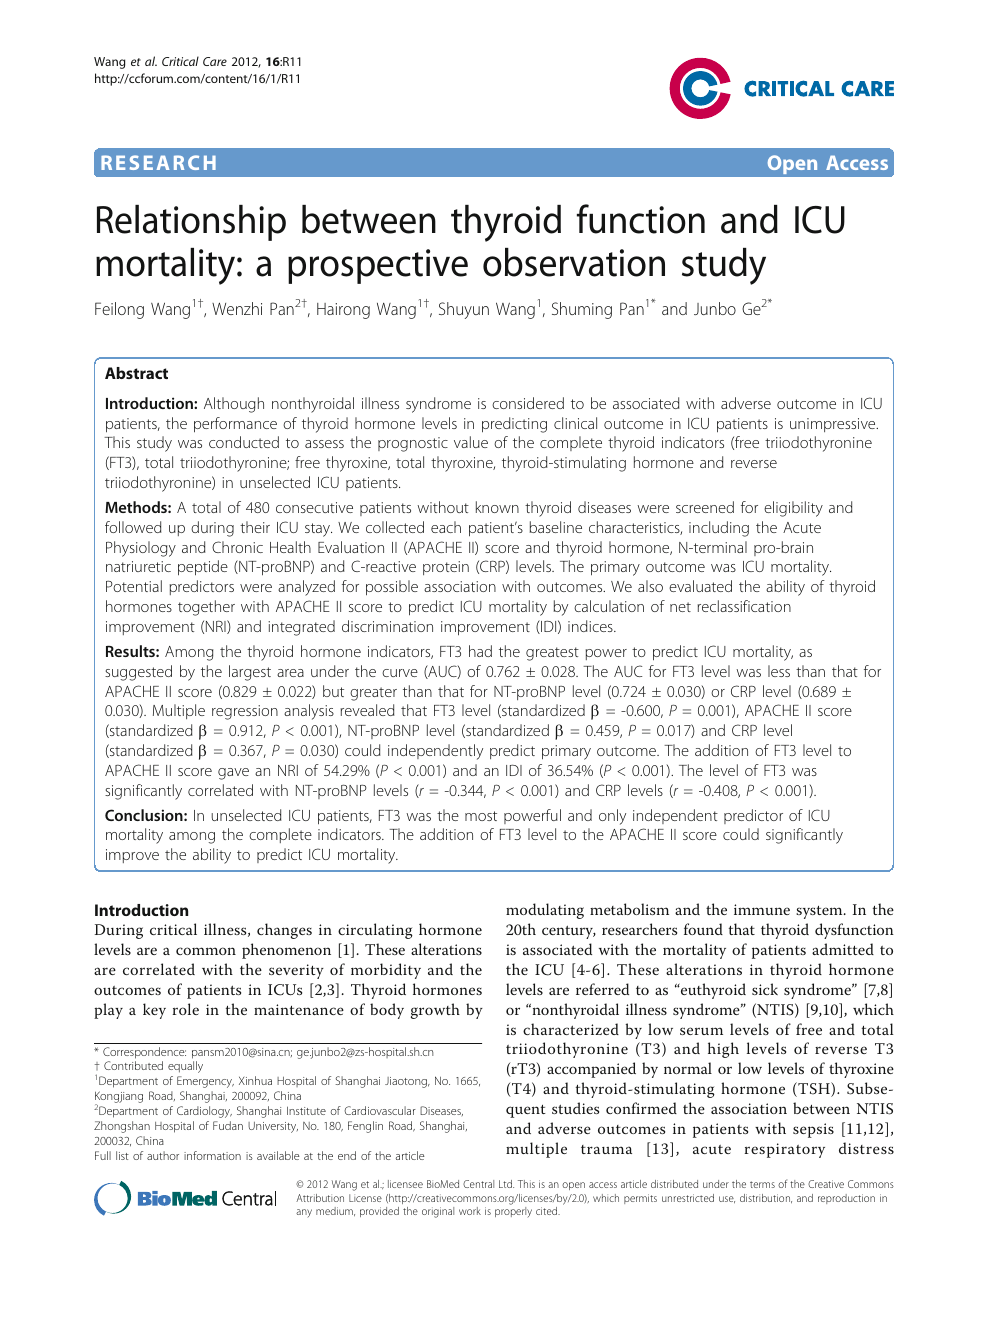 Relationship Between Thyroid Function And Icu Mortality A